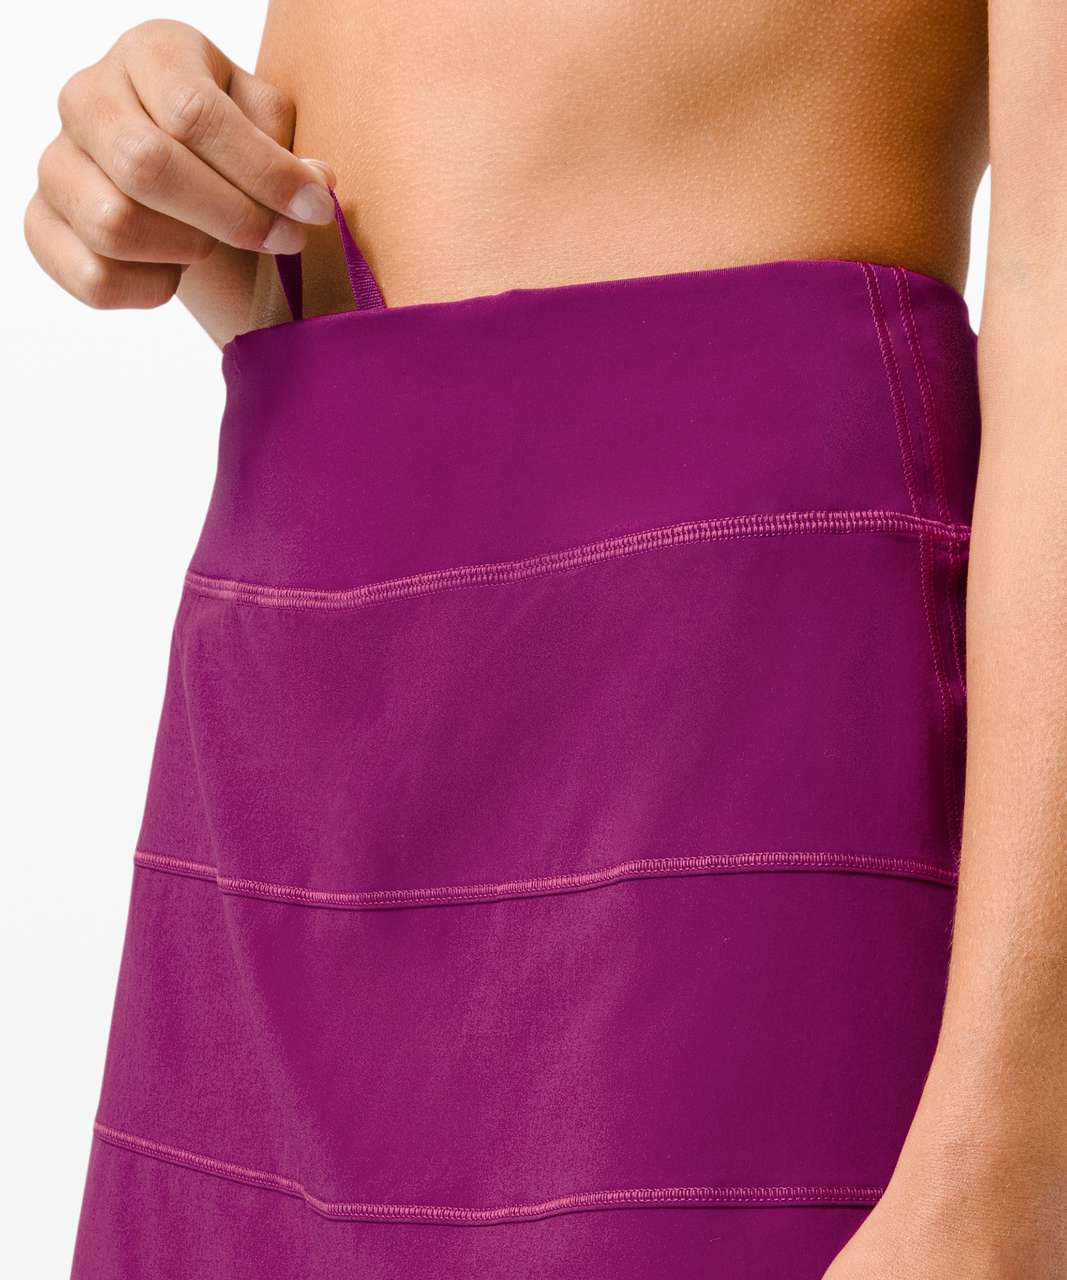 "Lululemon Pace Rival Skirt (Tall) *4-way Stretch 15"" - Deep Fuschia"